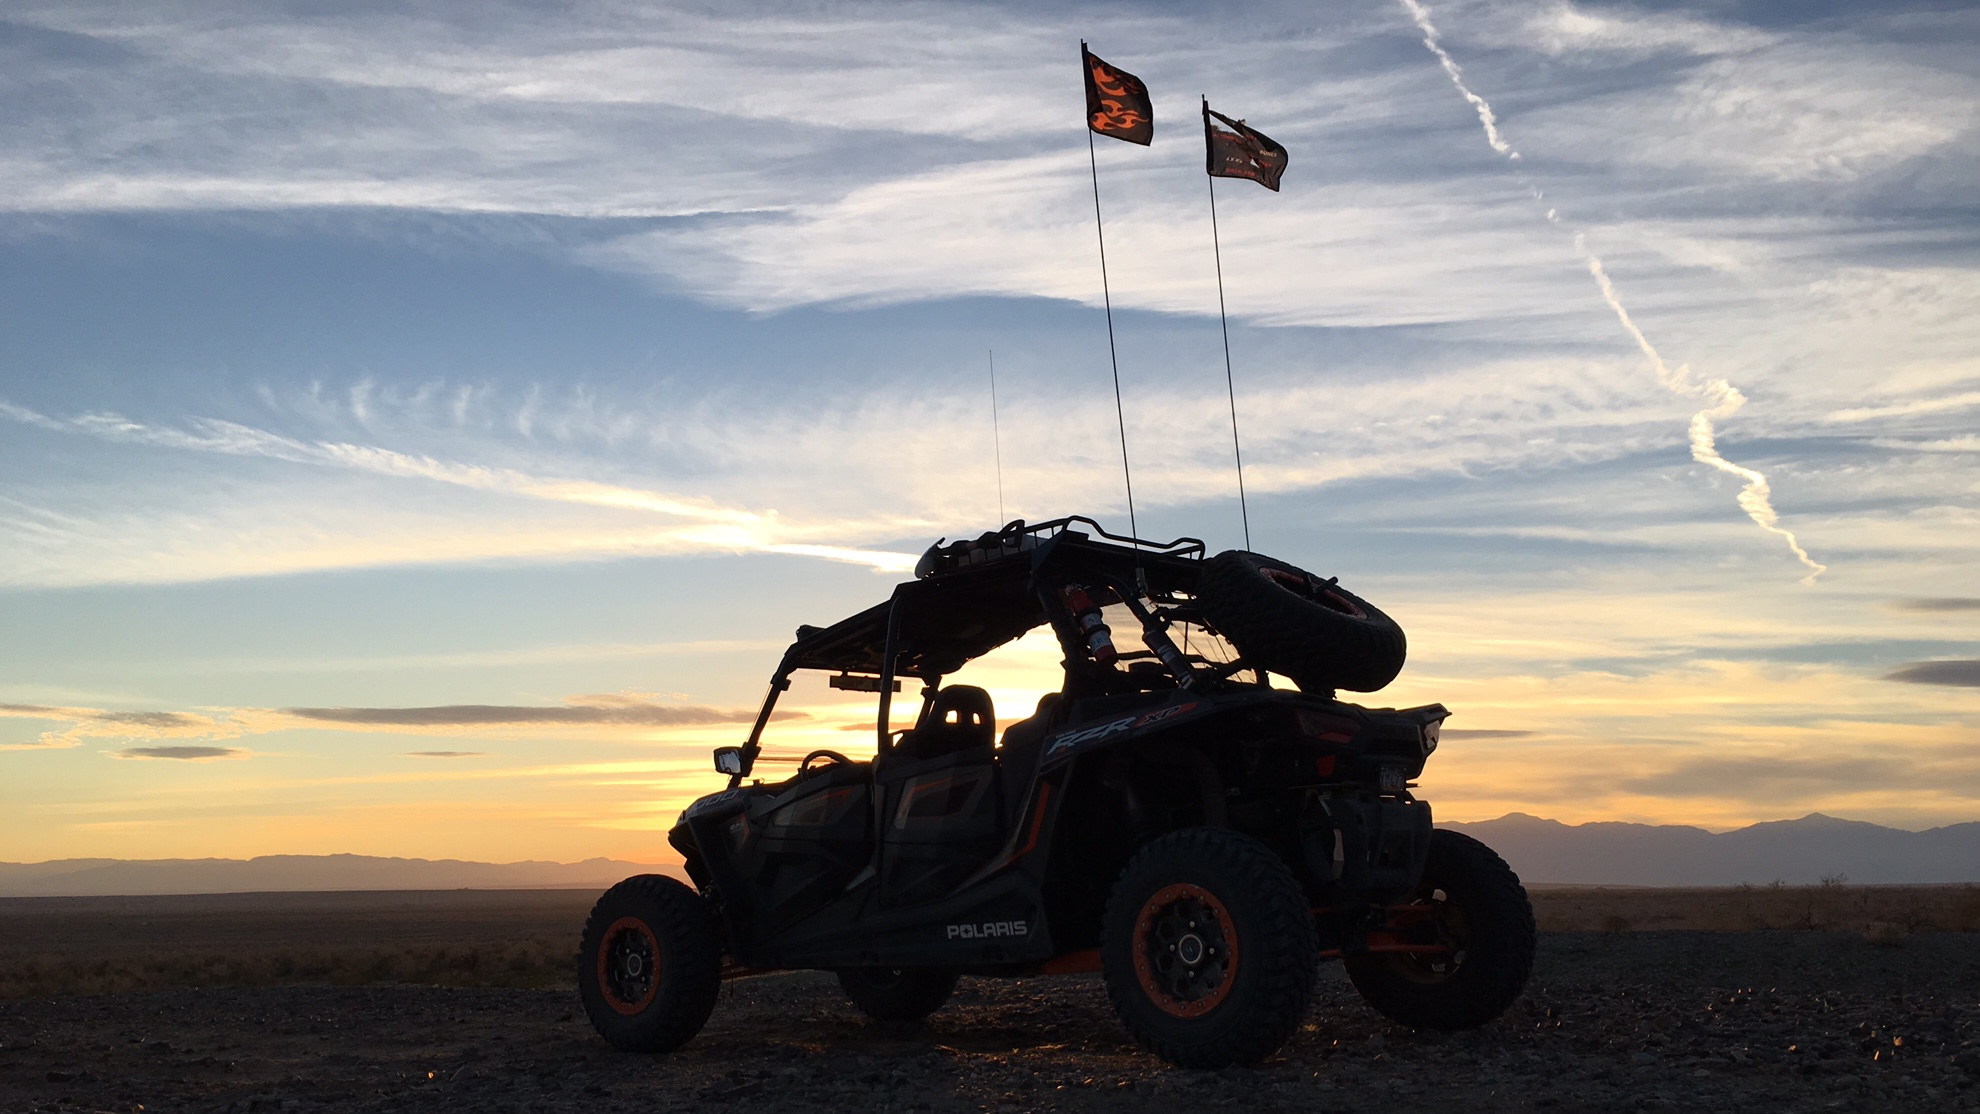 PIcture of ATV with sunset in the background